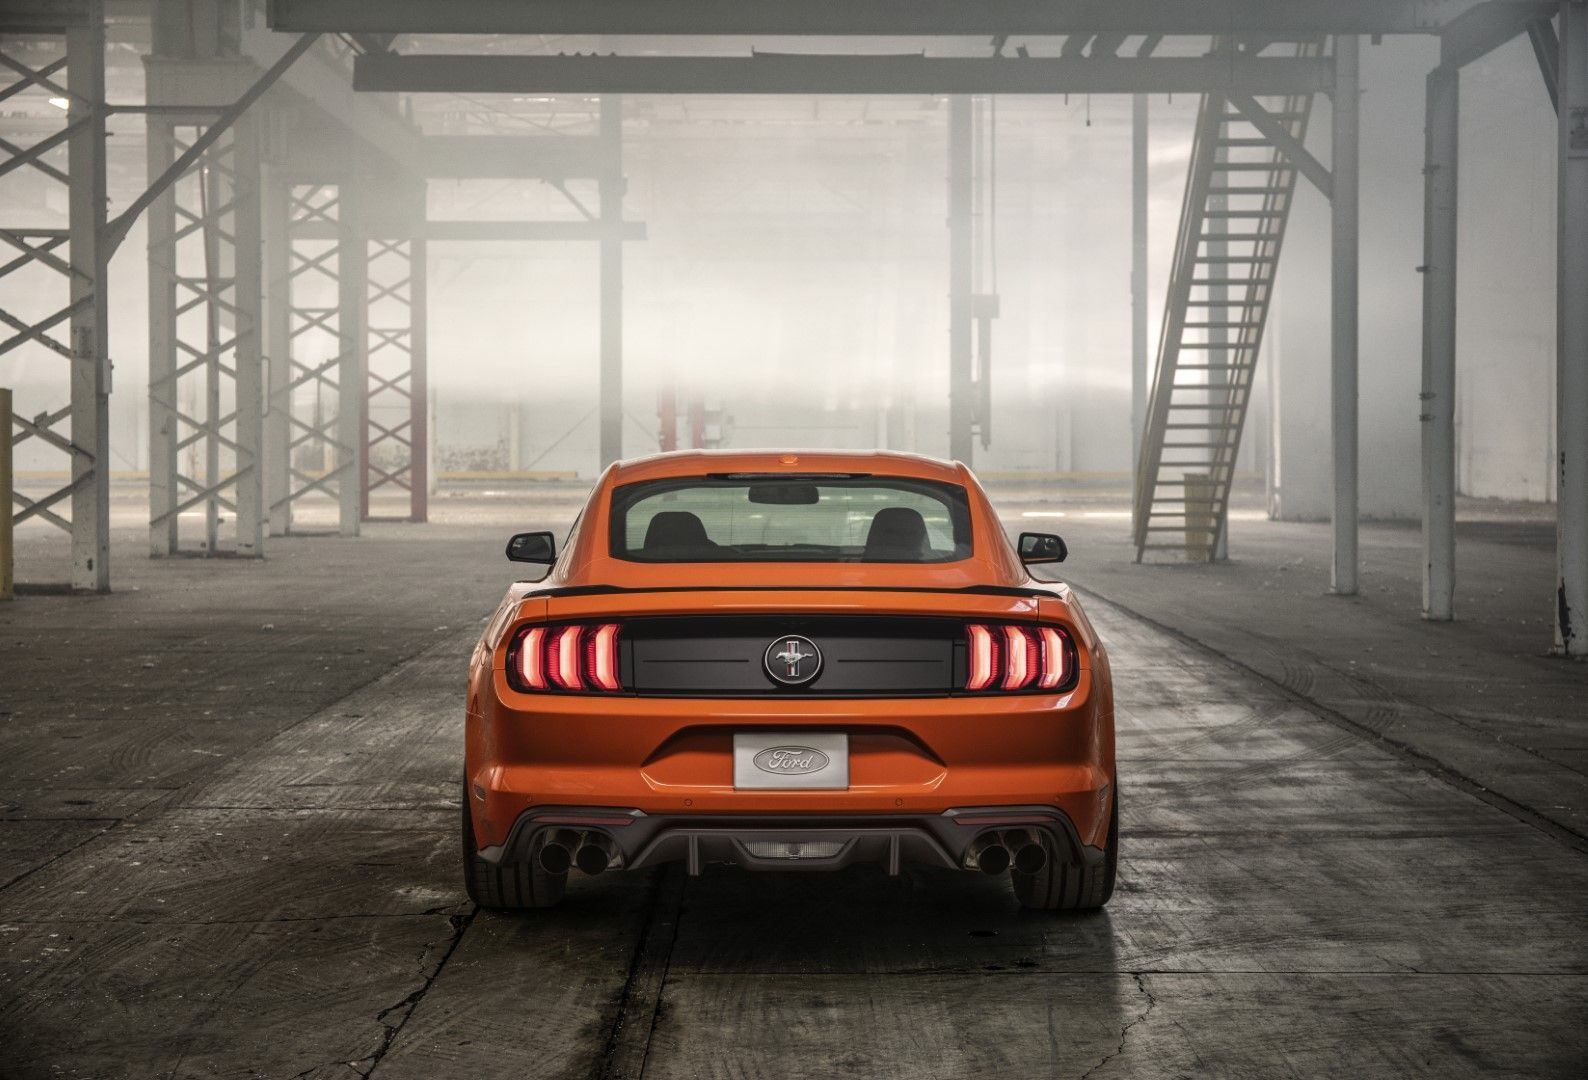 2020 Ford Mustang High Performance Package 2 3l Dohc I4 Ecoboost 330 Hp 350 Lb Ft Of Torque Mustang Ecoboost Ford Mustang Ecoboost Ford Mustang